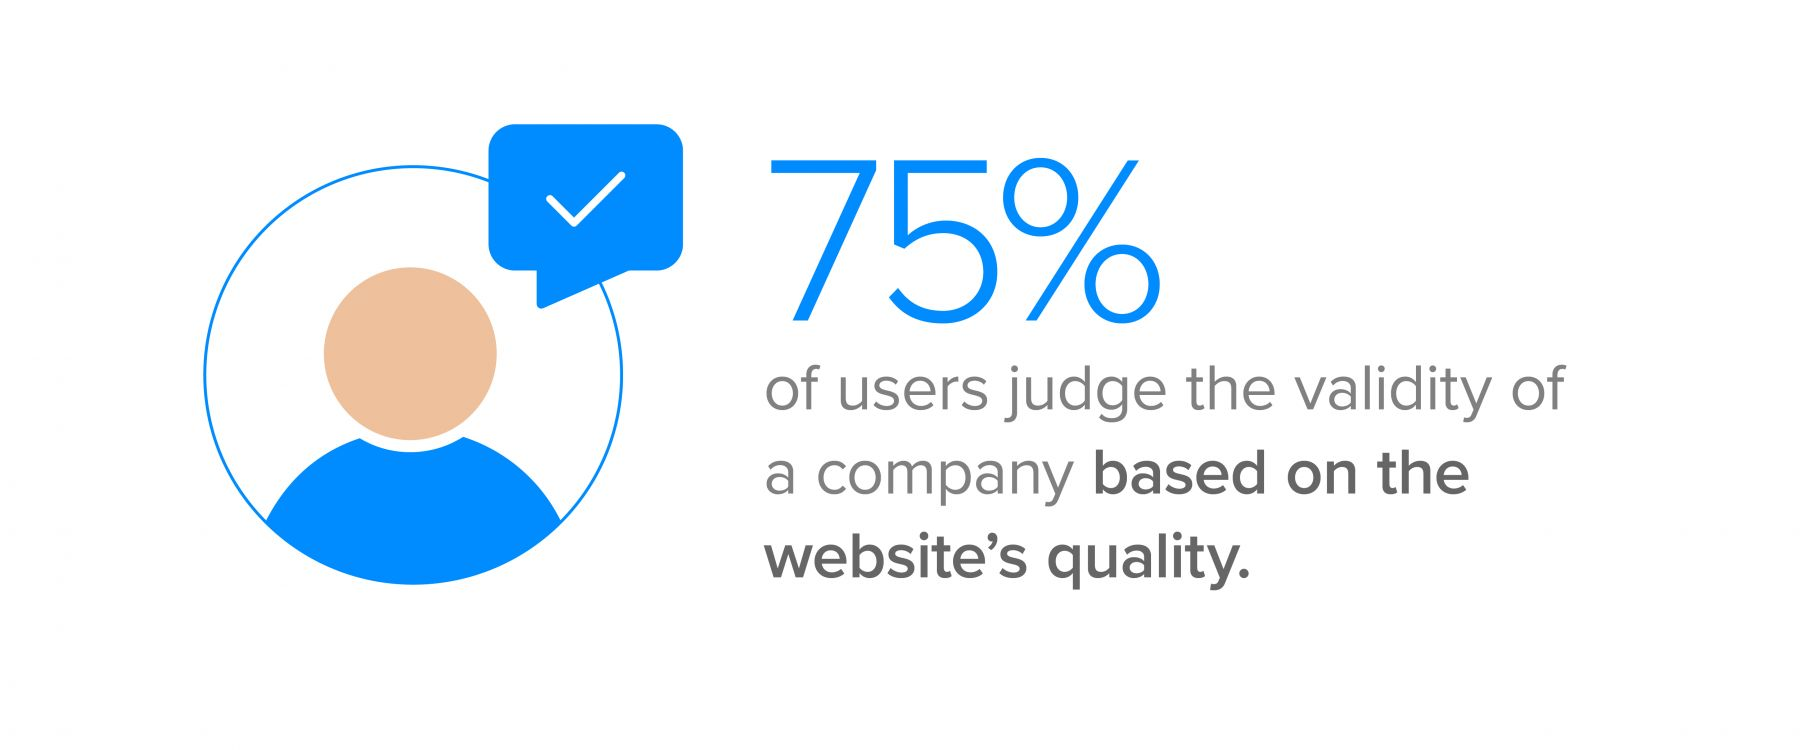 75% of users judge the validity of a company based on the website's quality.